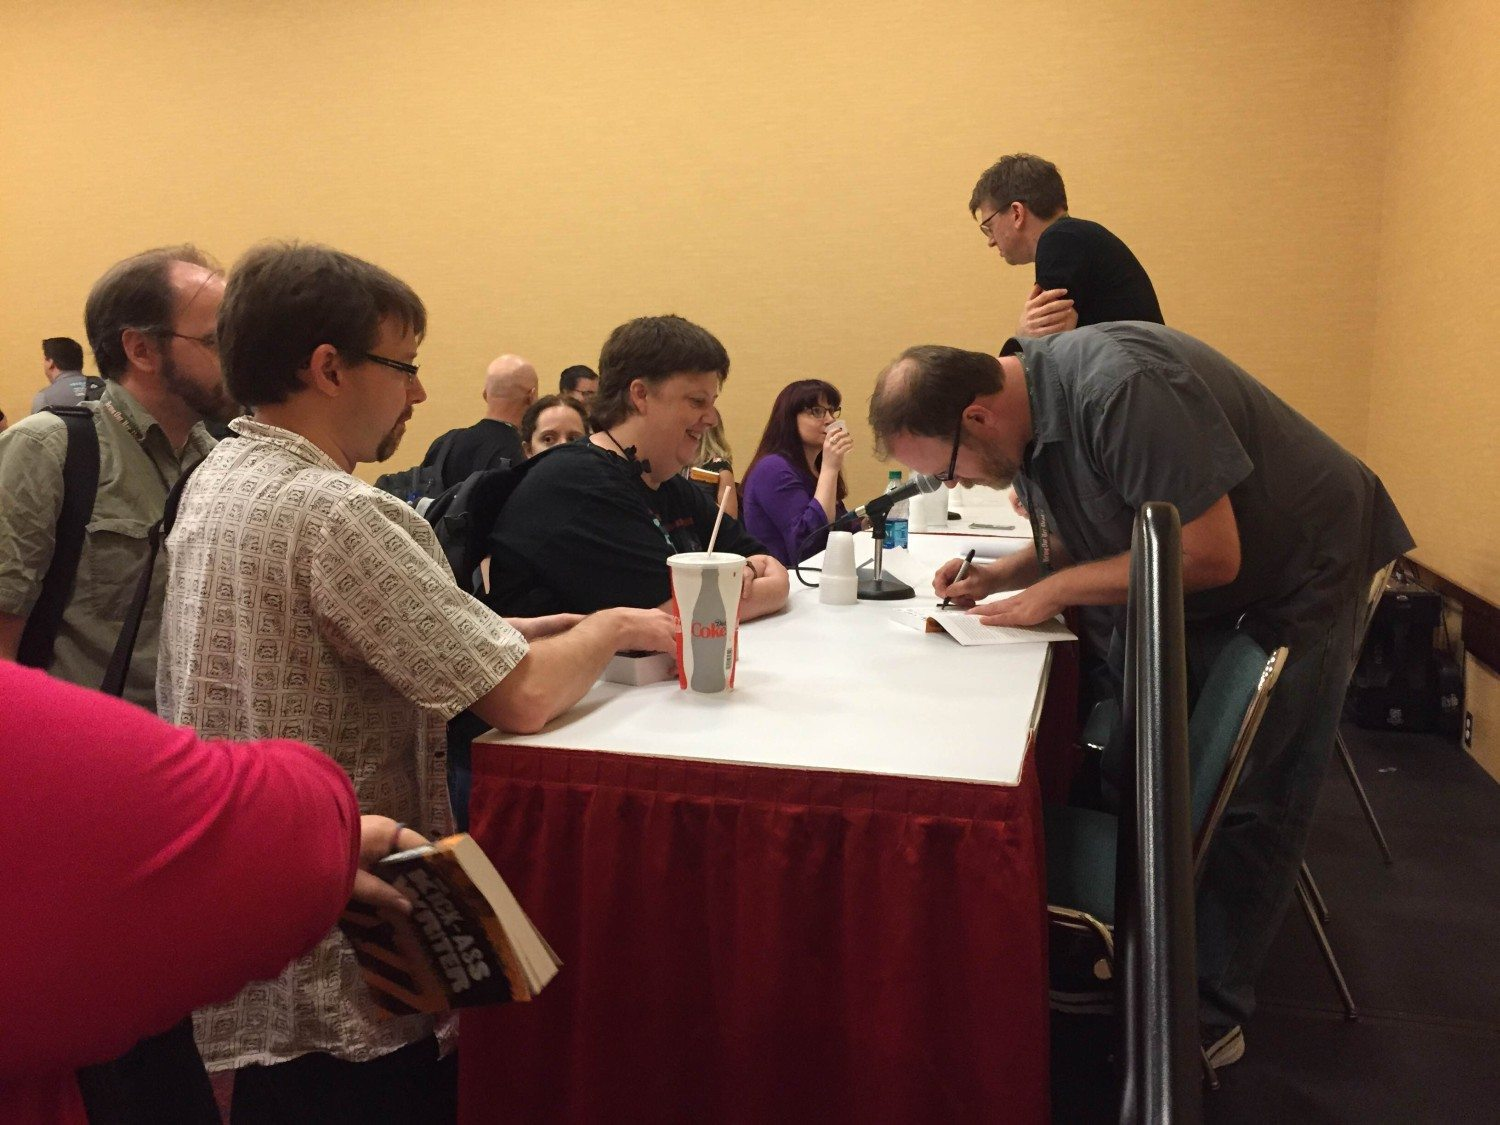 Chuck Wendig signs books for a fan after a panel